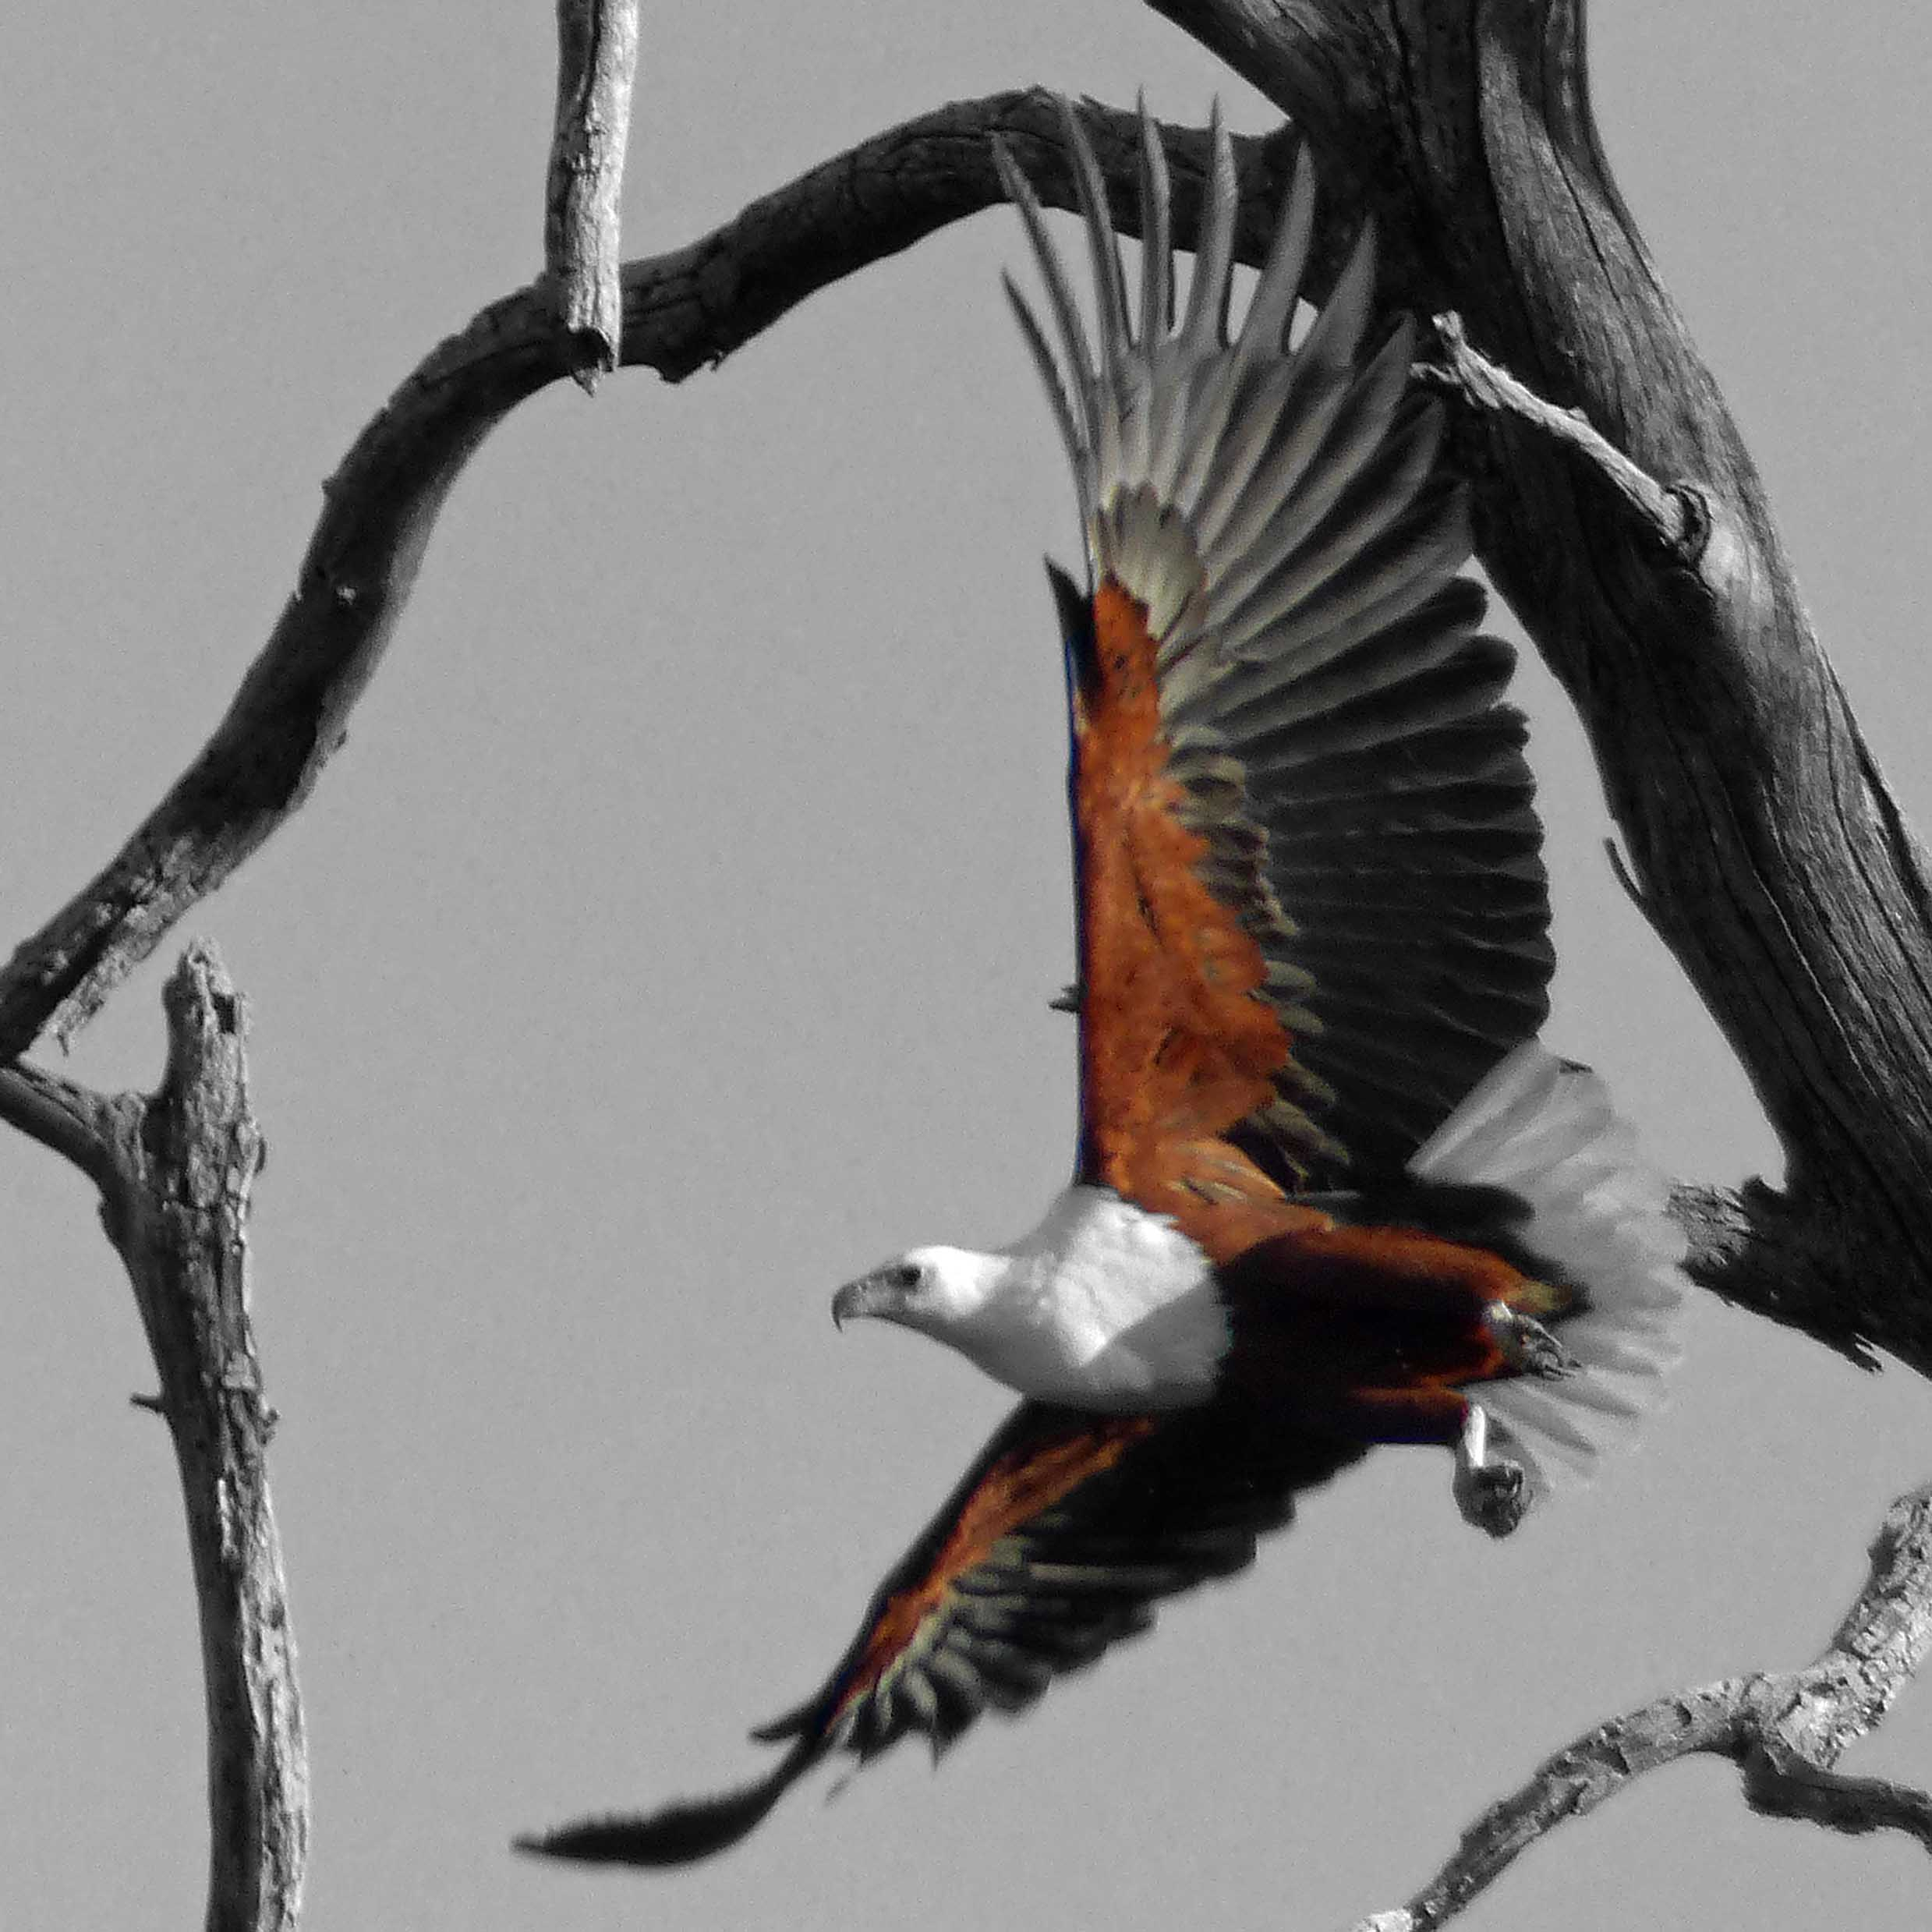 Brown eagle in flight past a dead tree, mostly black and white